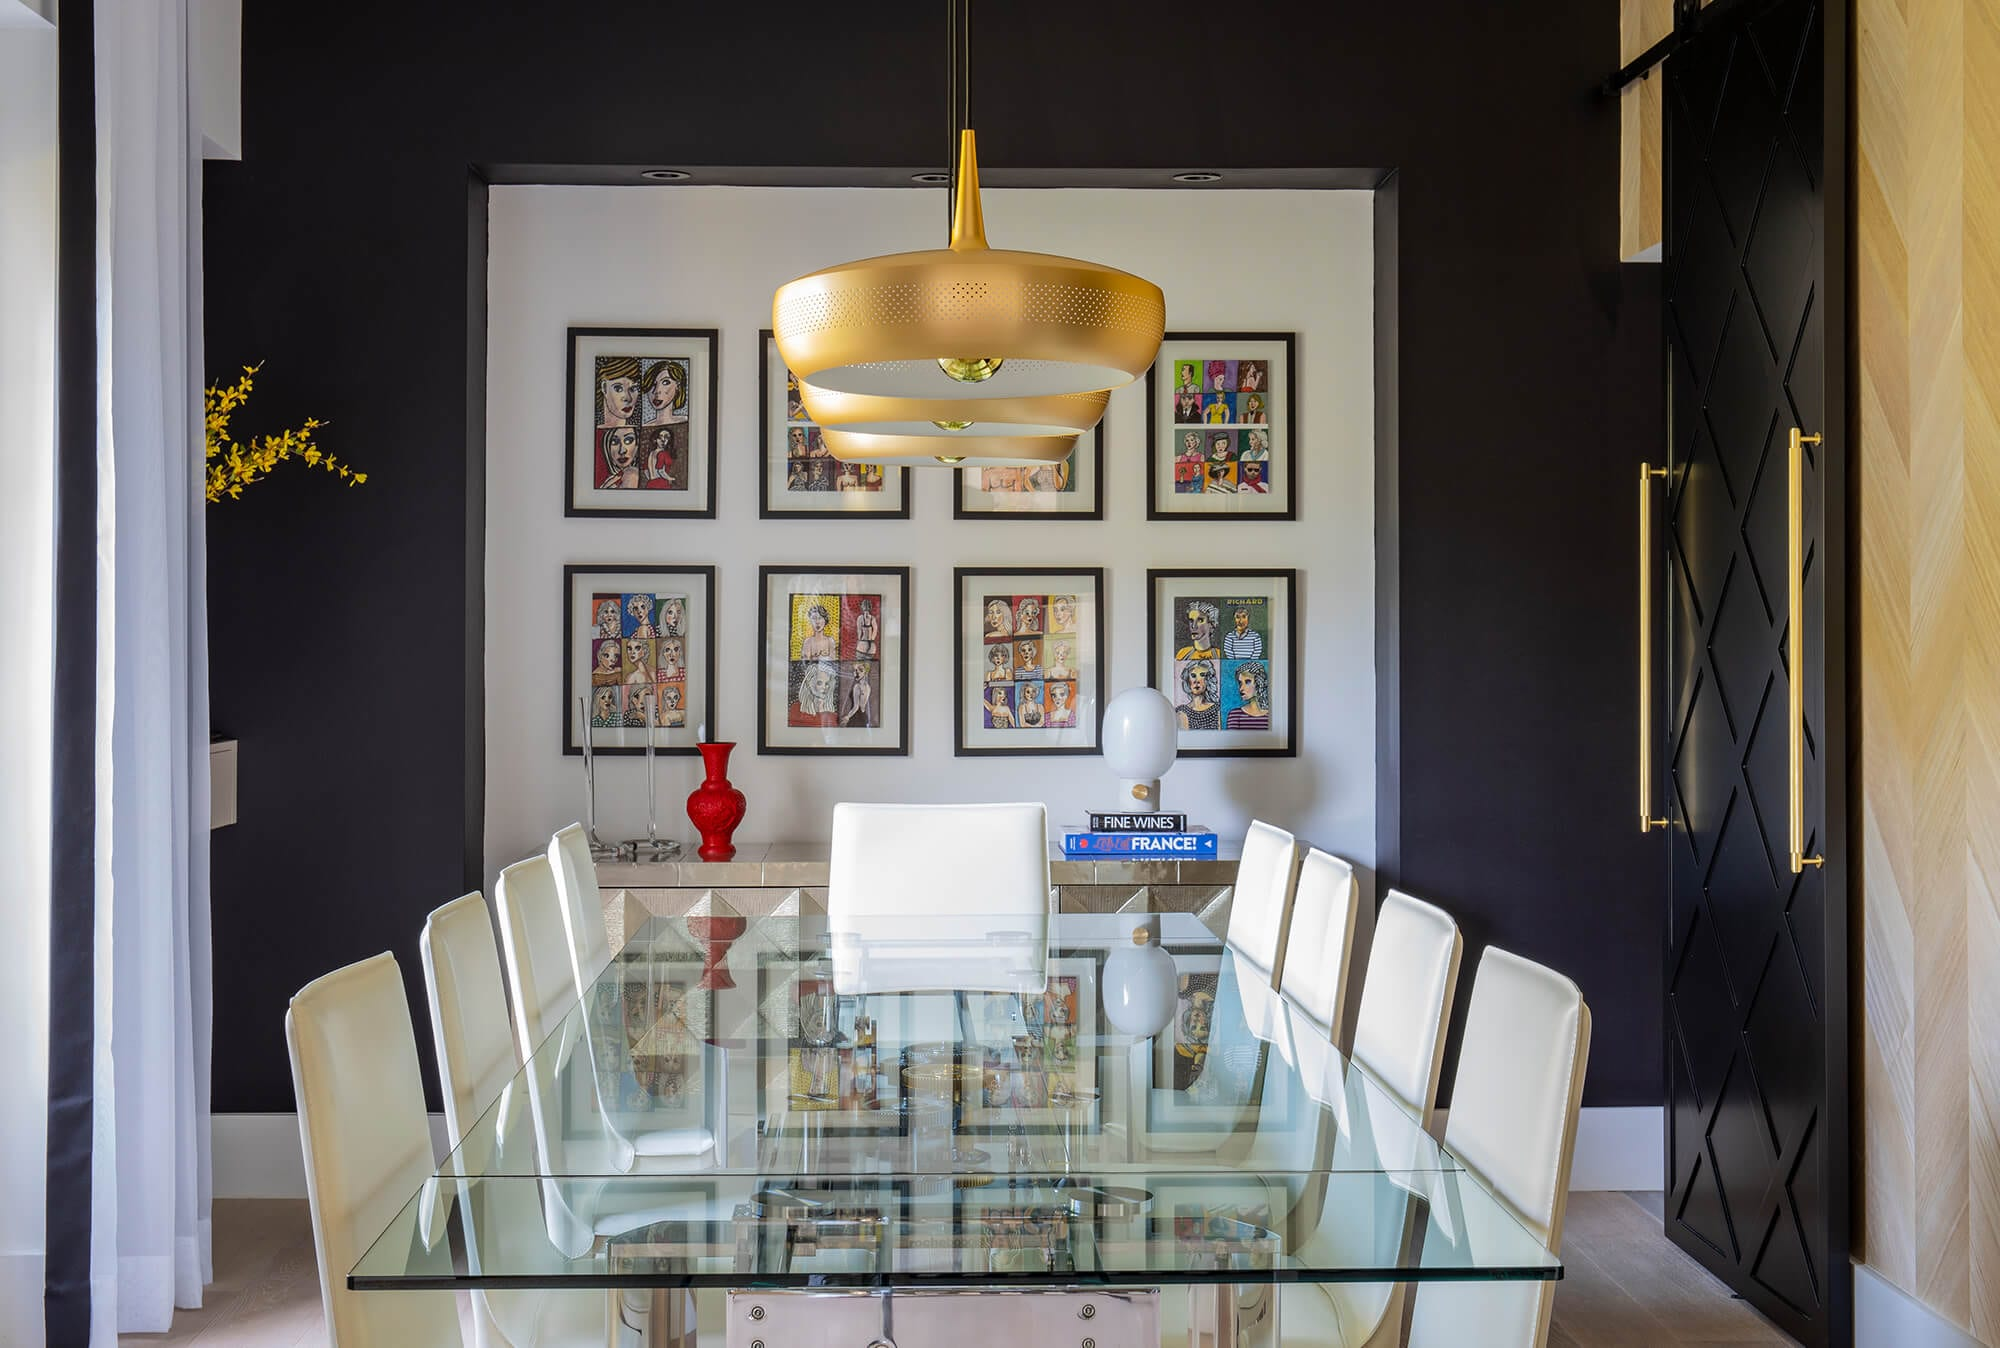 Interiors by Maite Granda - Coral Gables Eclectic - Dining